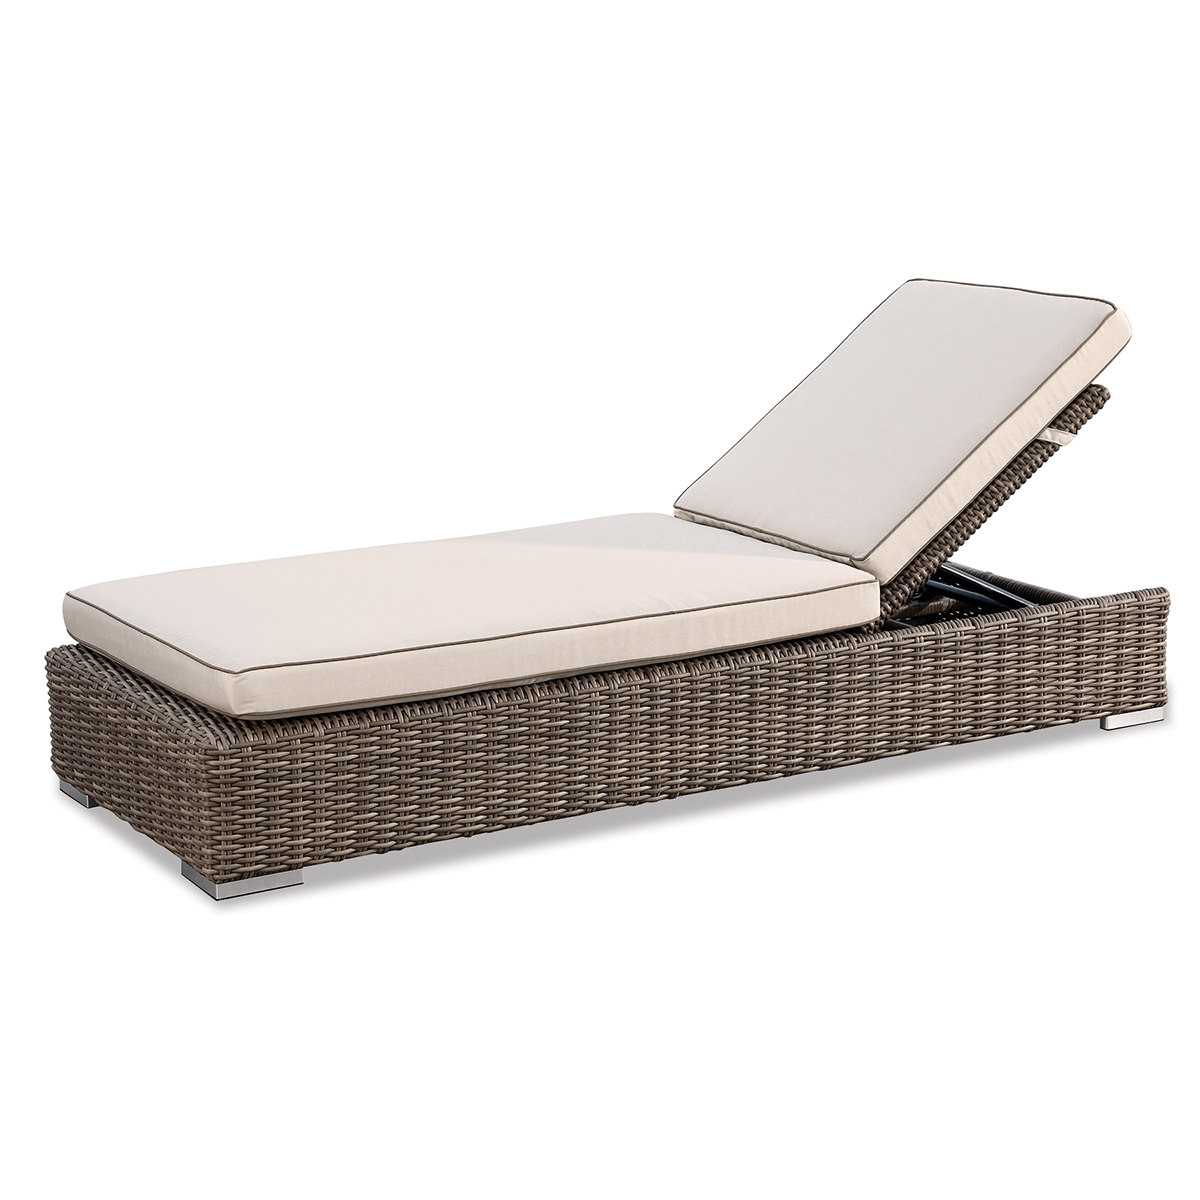 Favorite Wicker Outdoor Chaise Lounges For Wicker Chaise Lounge Outdoor With Pillows Unforgettable Patio (View 8 of 15)